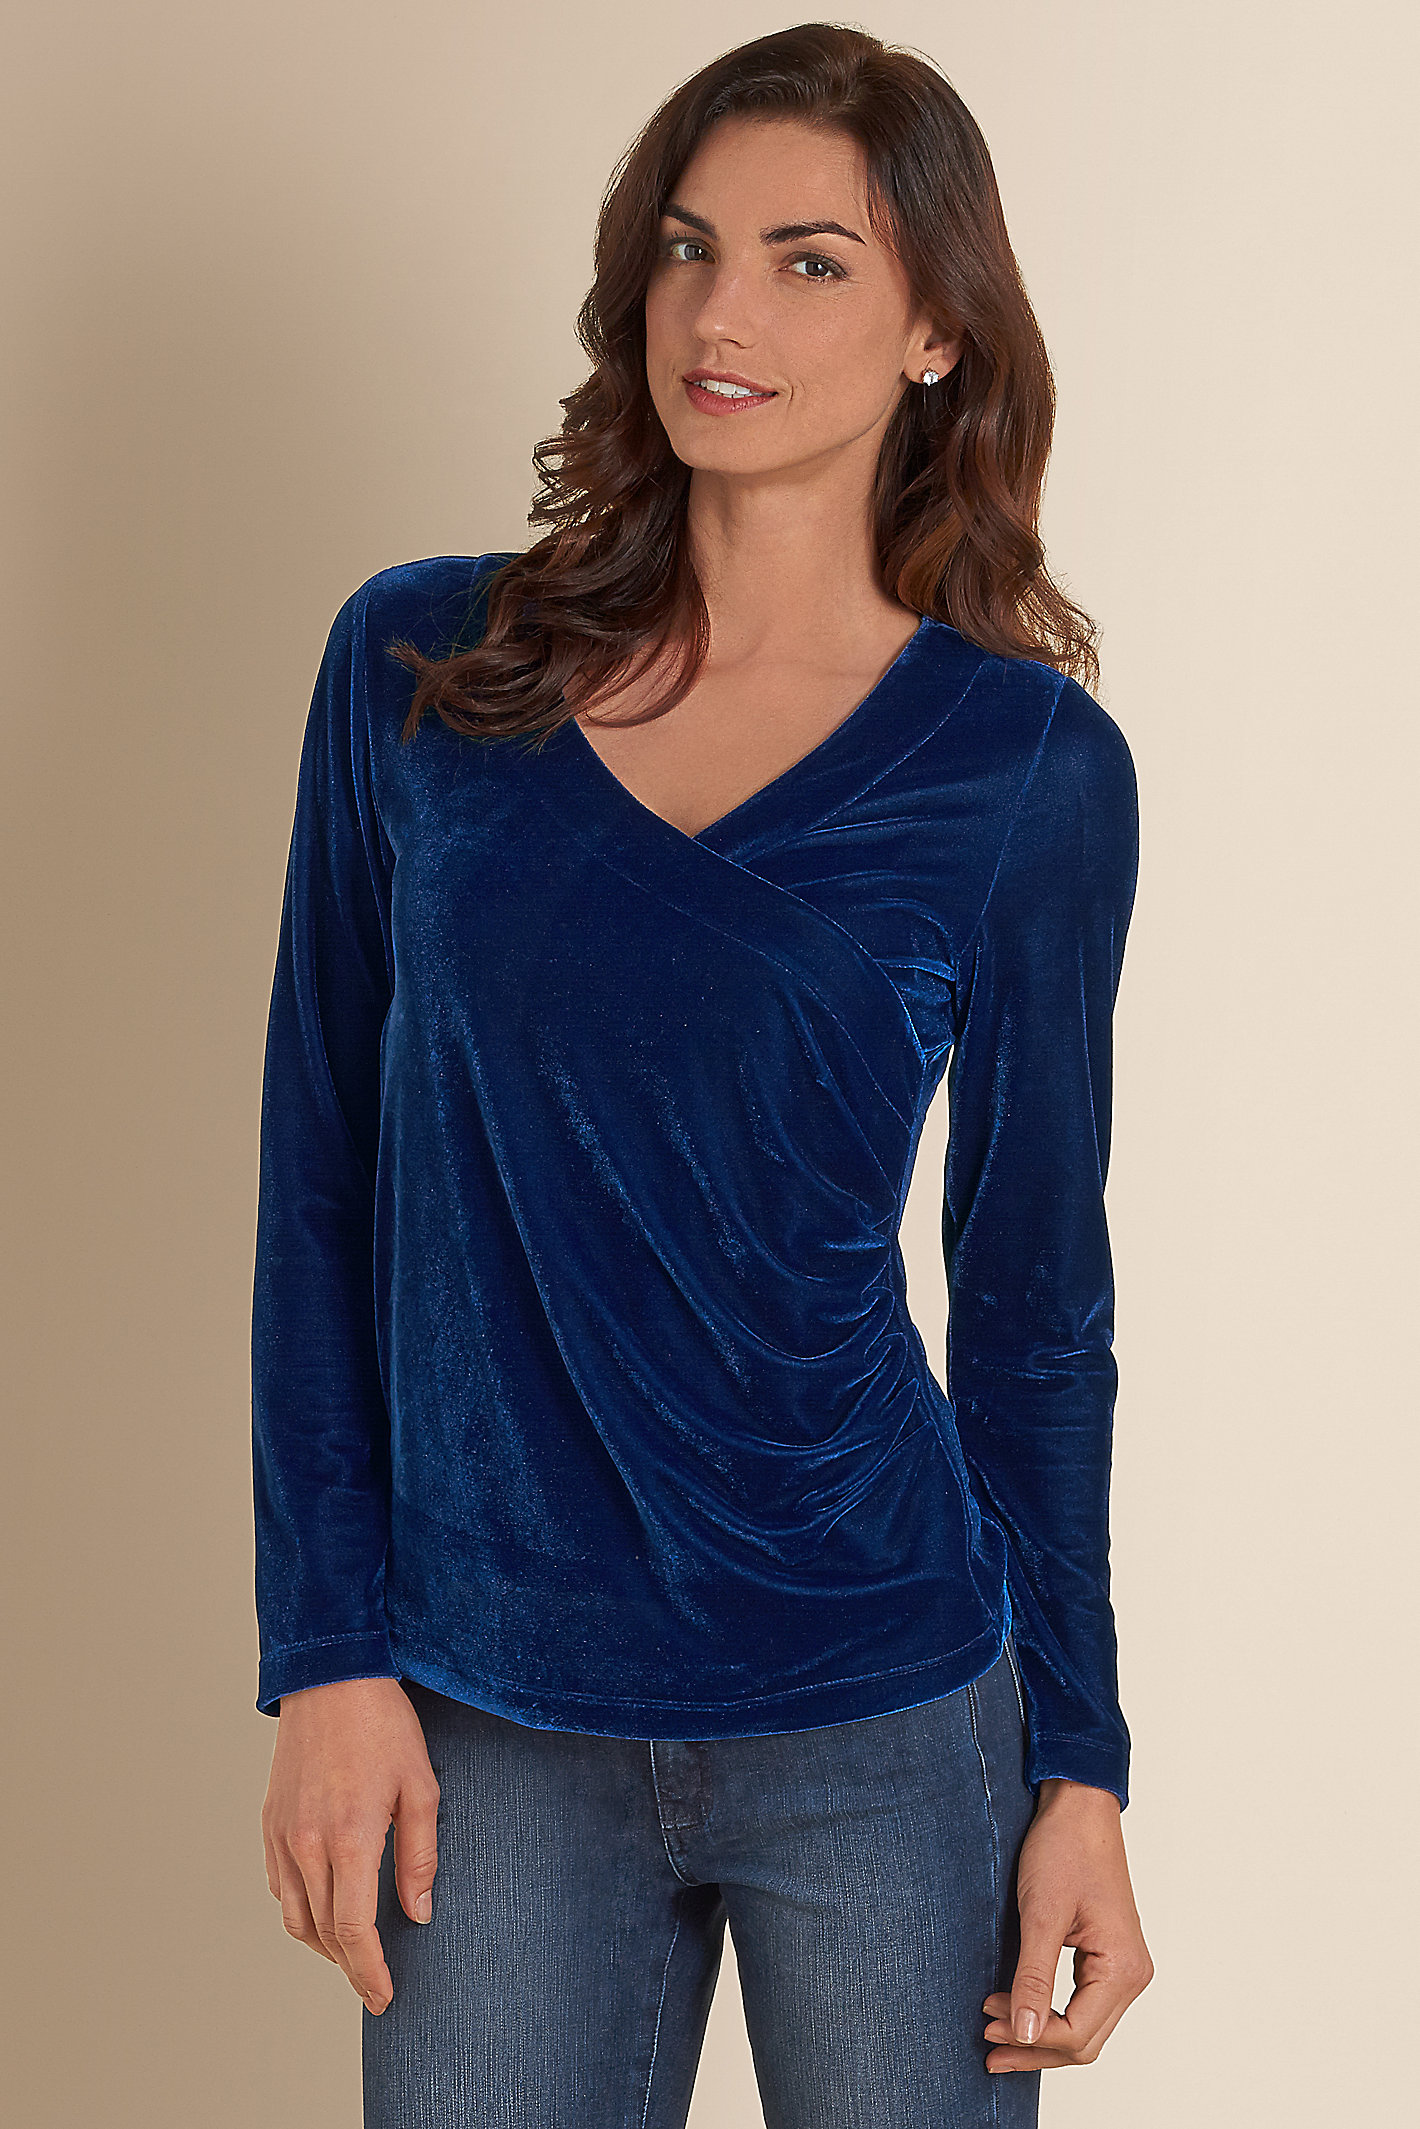 Women Velvet Shapely Stretch Top